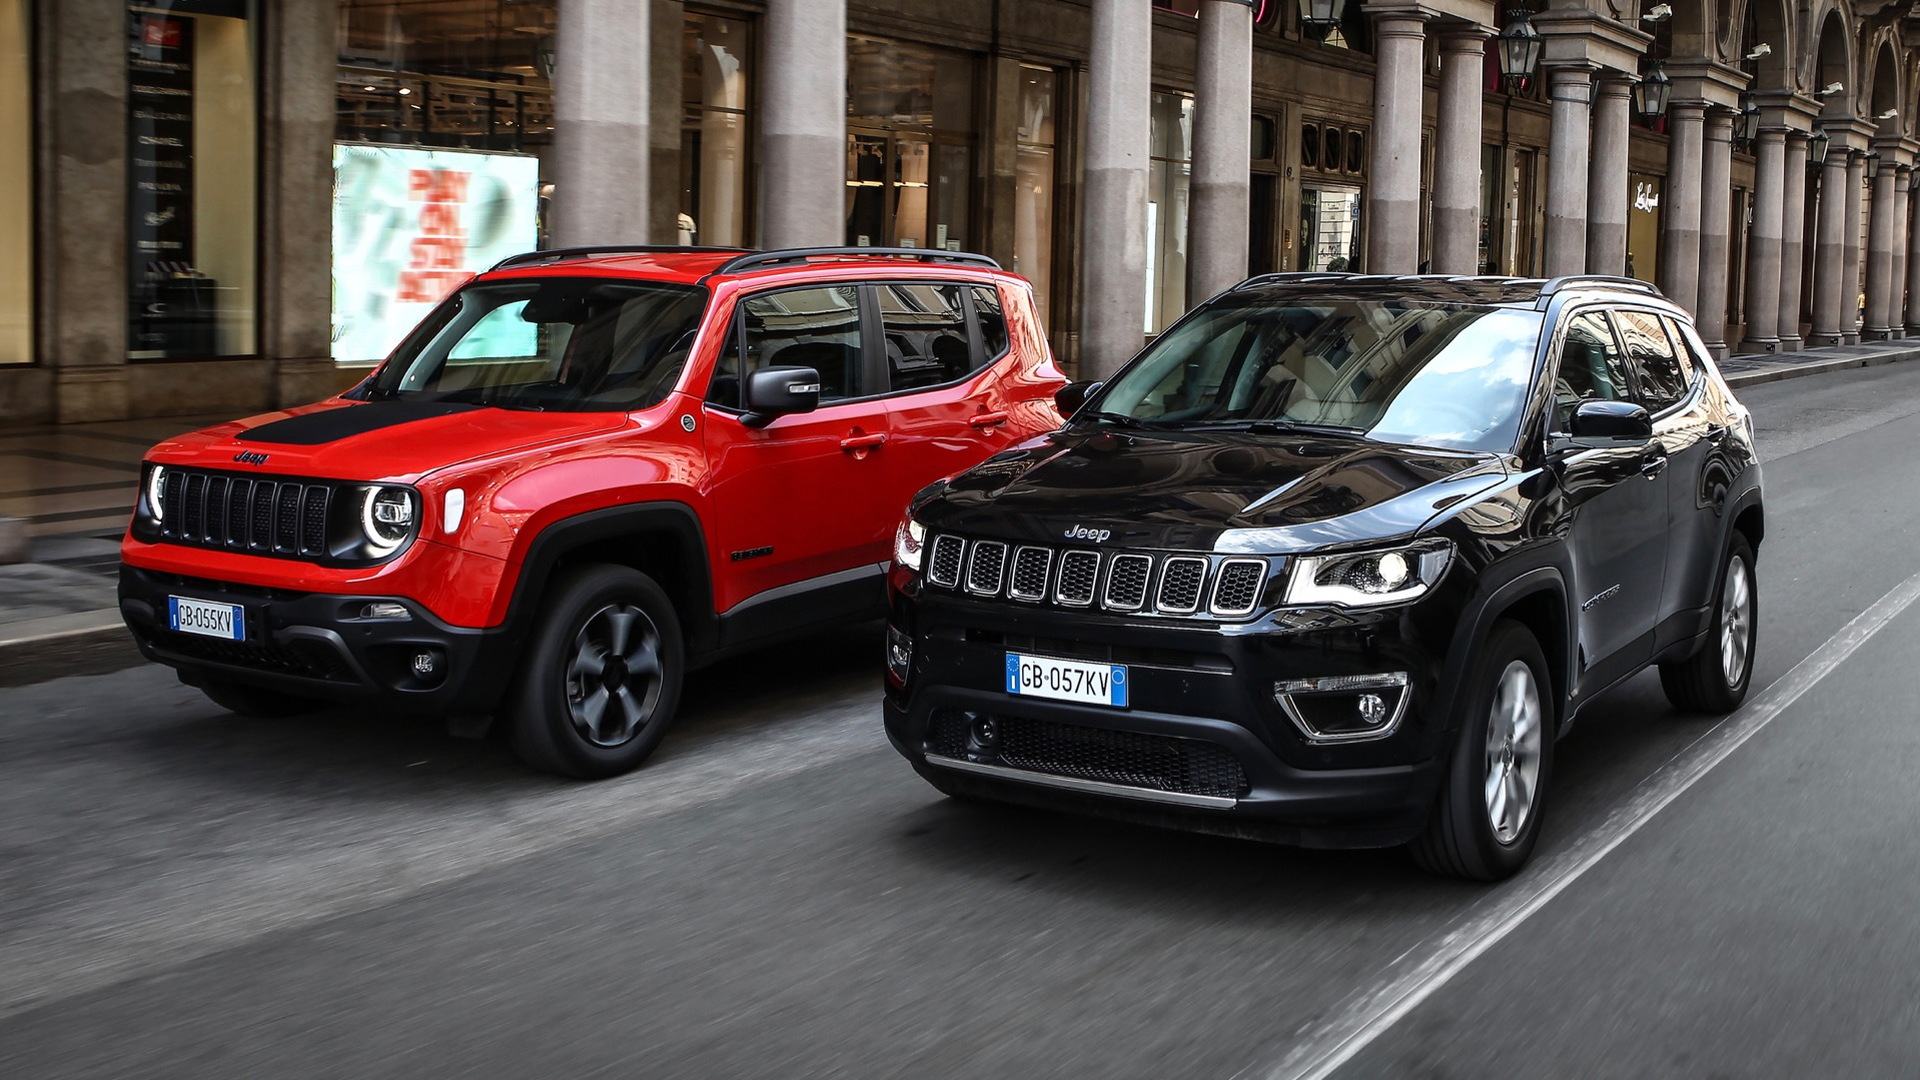 Jeep Renegade 4xe and Compass 4xe plug-in hybrids